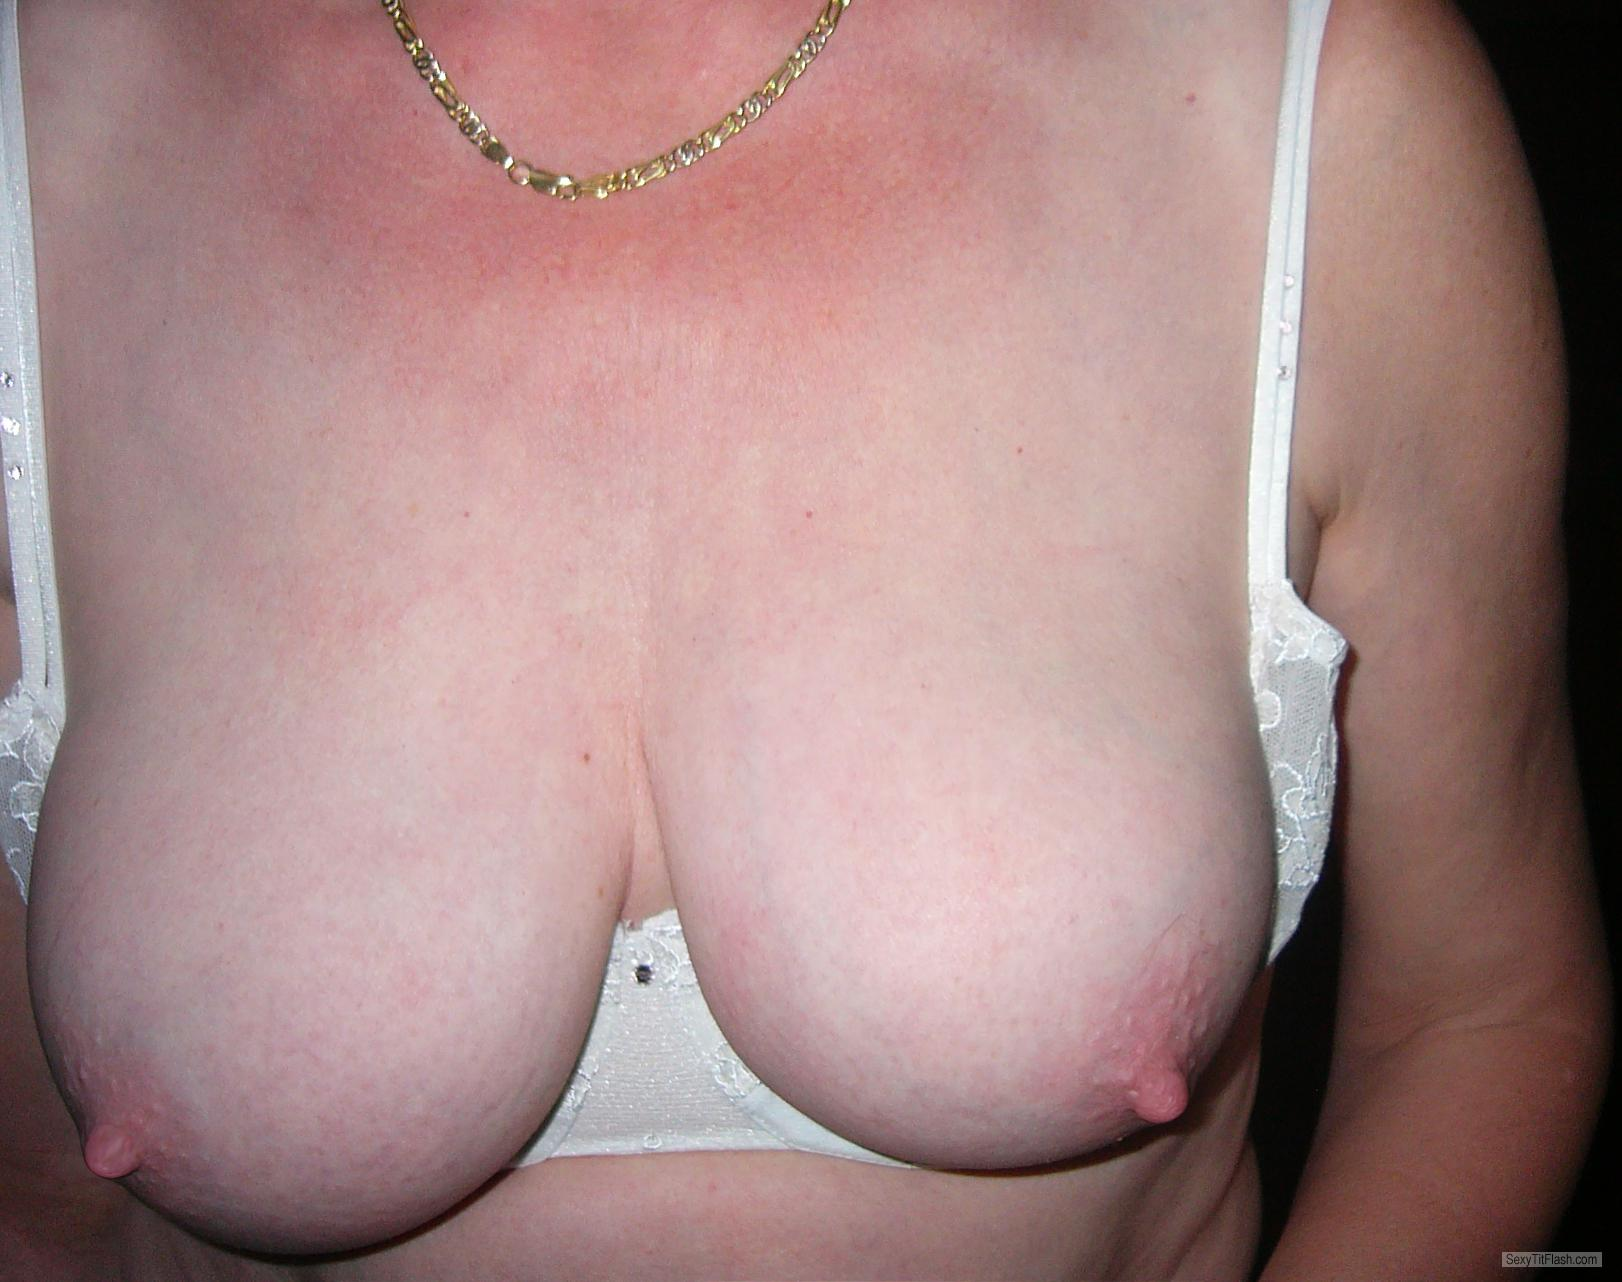 Tit Flash: Wife's Tanlined Medium Tits - Lydia from Belgium